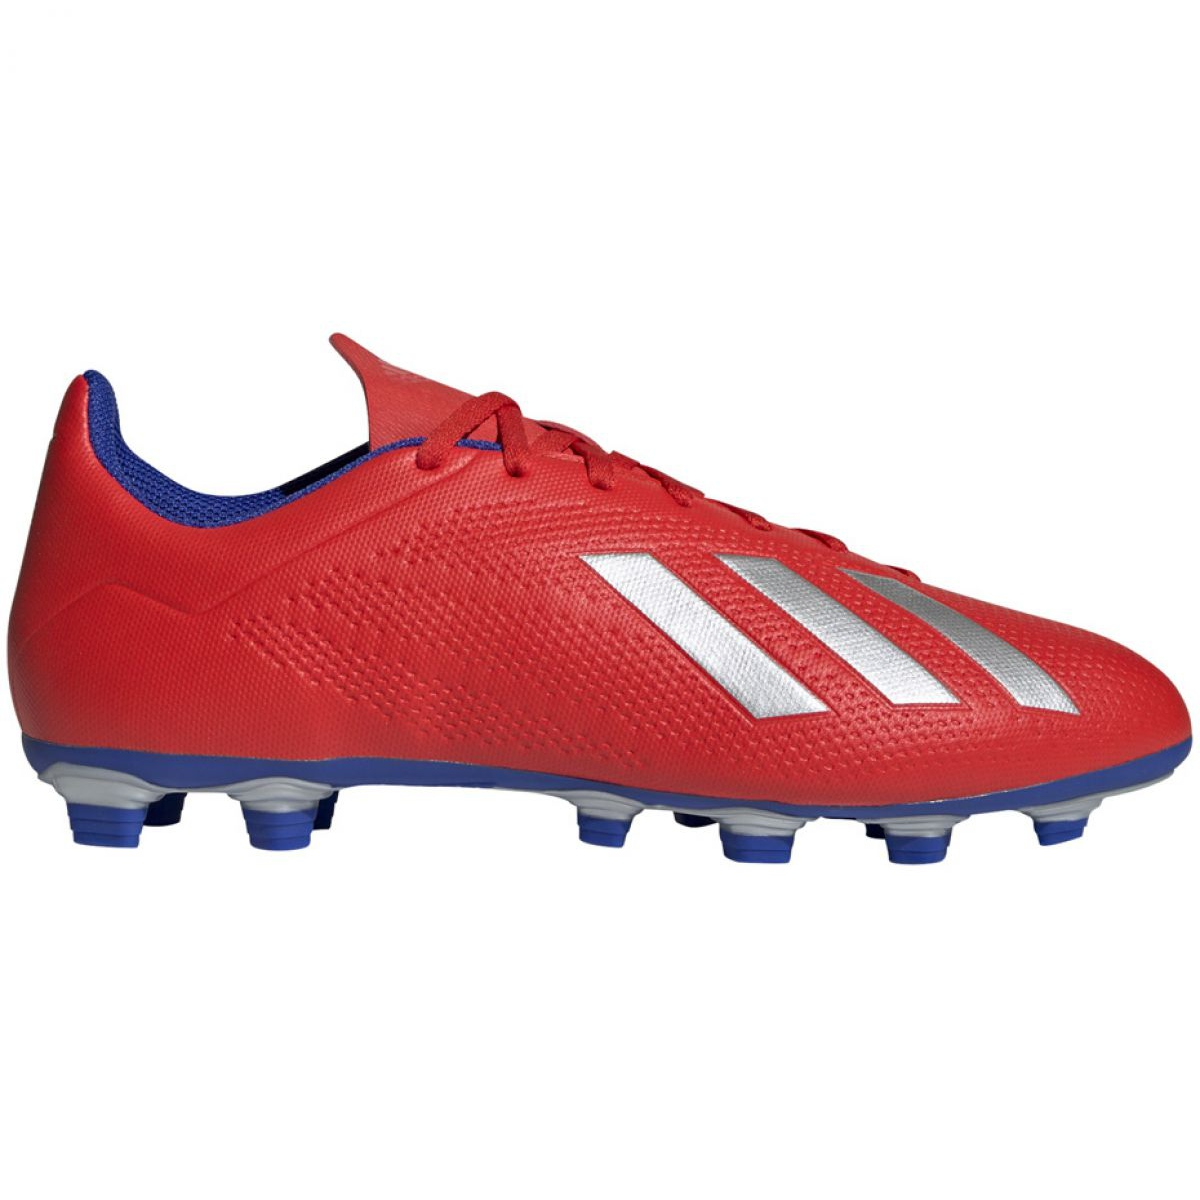 Chaussures de foot adidas Copa Gloro 20 FG GrisArgent